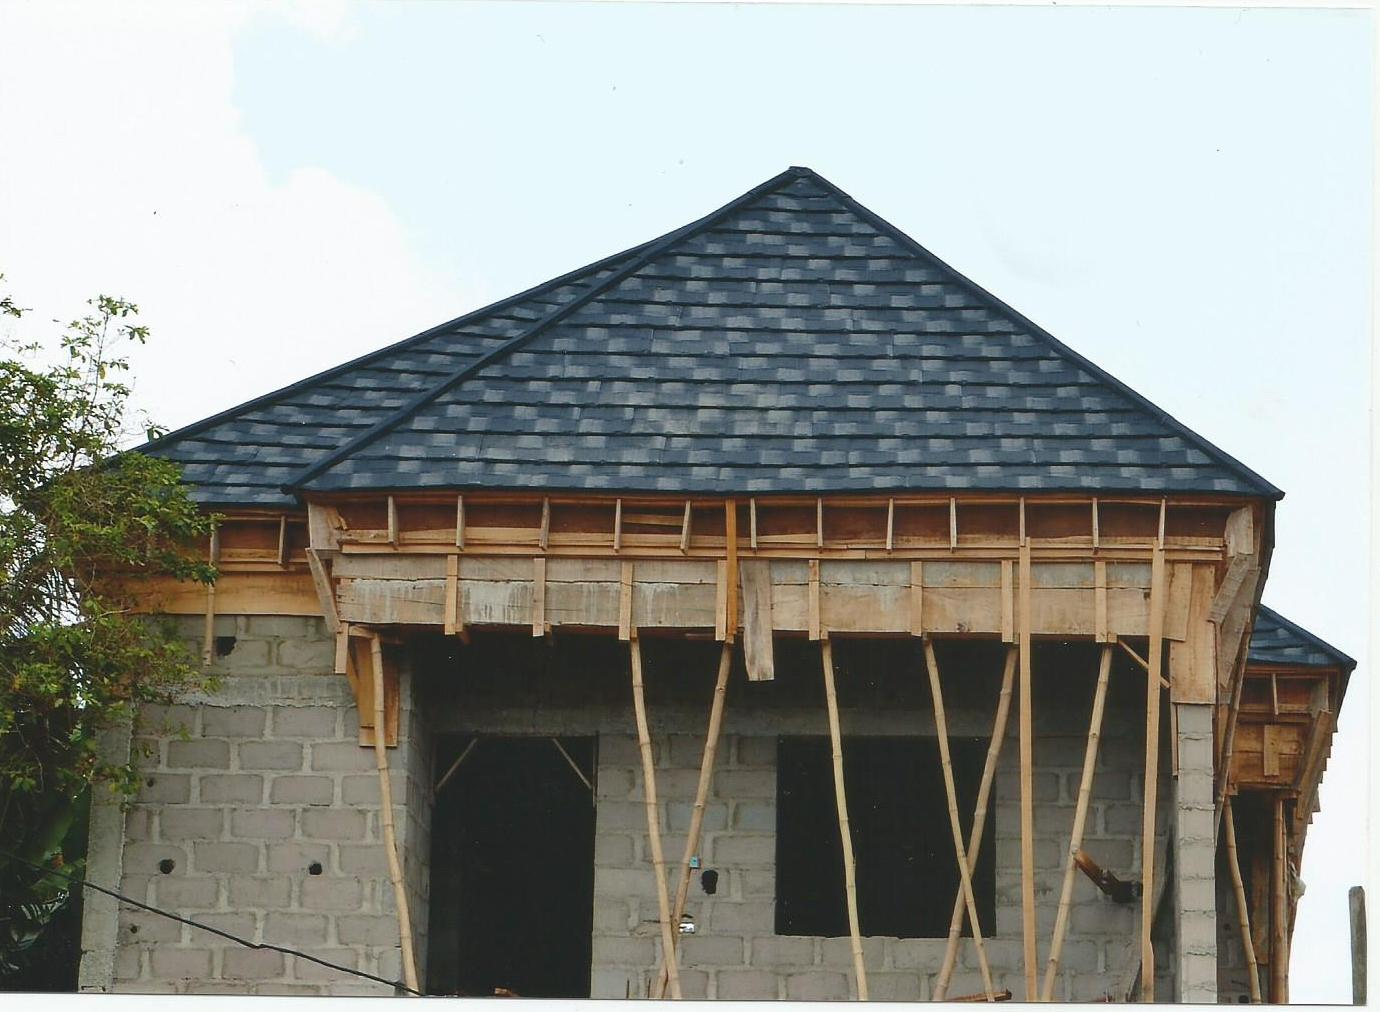 Cost of stone coated roofing tile in nigeria properties for Cost of materials to build a home